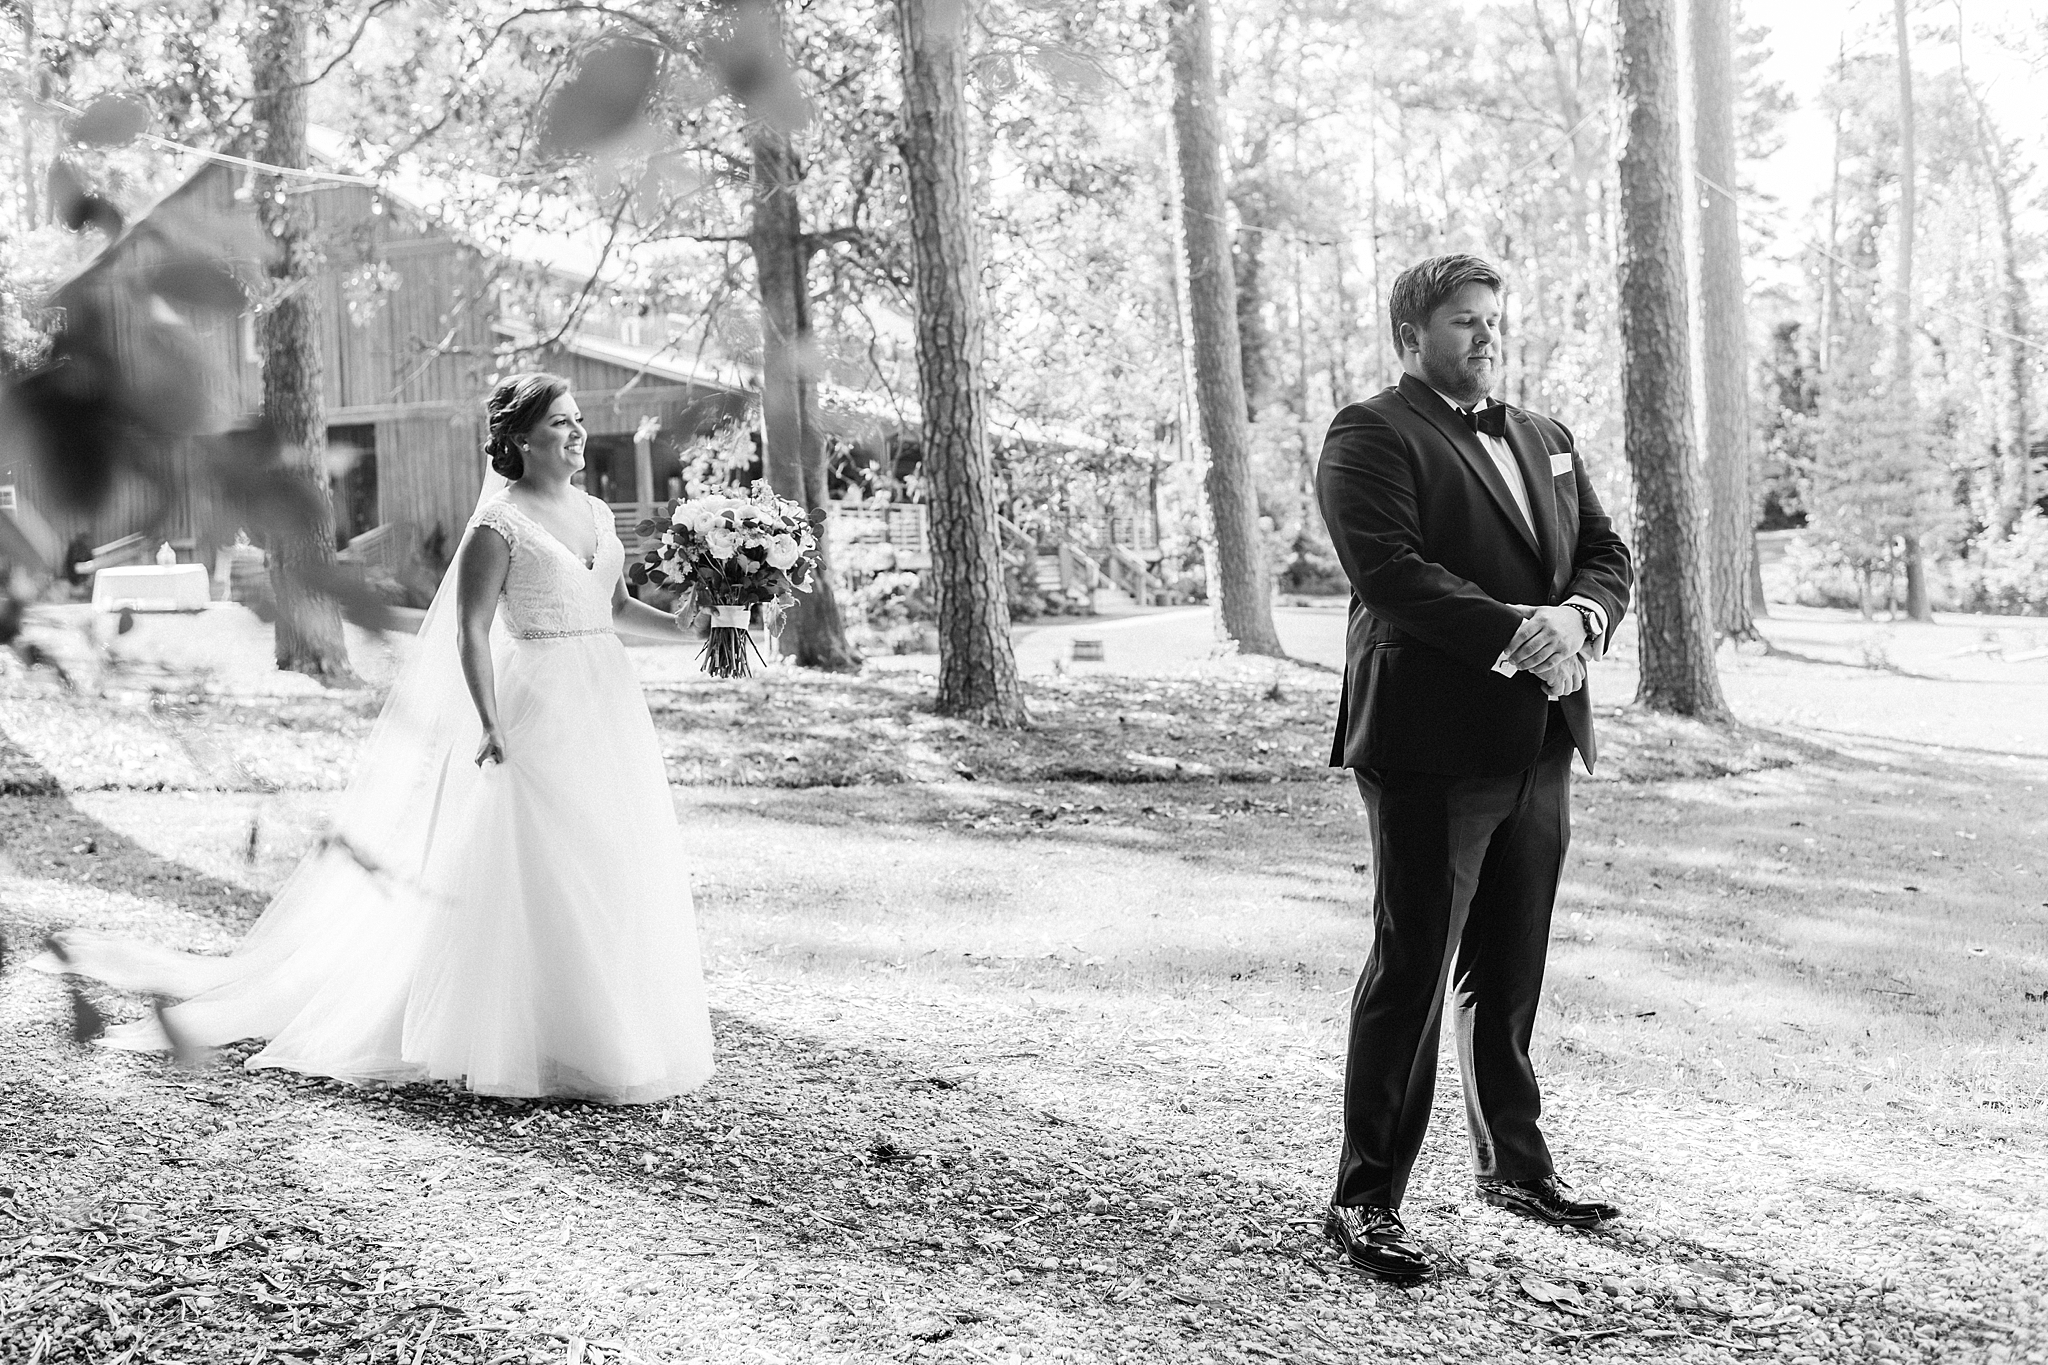 copperridgeontheneusewedding_0016.jpg